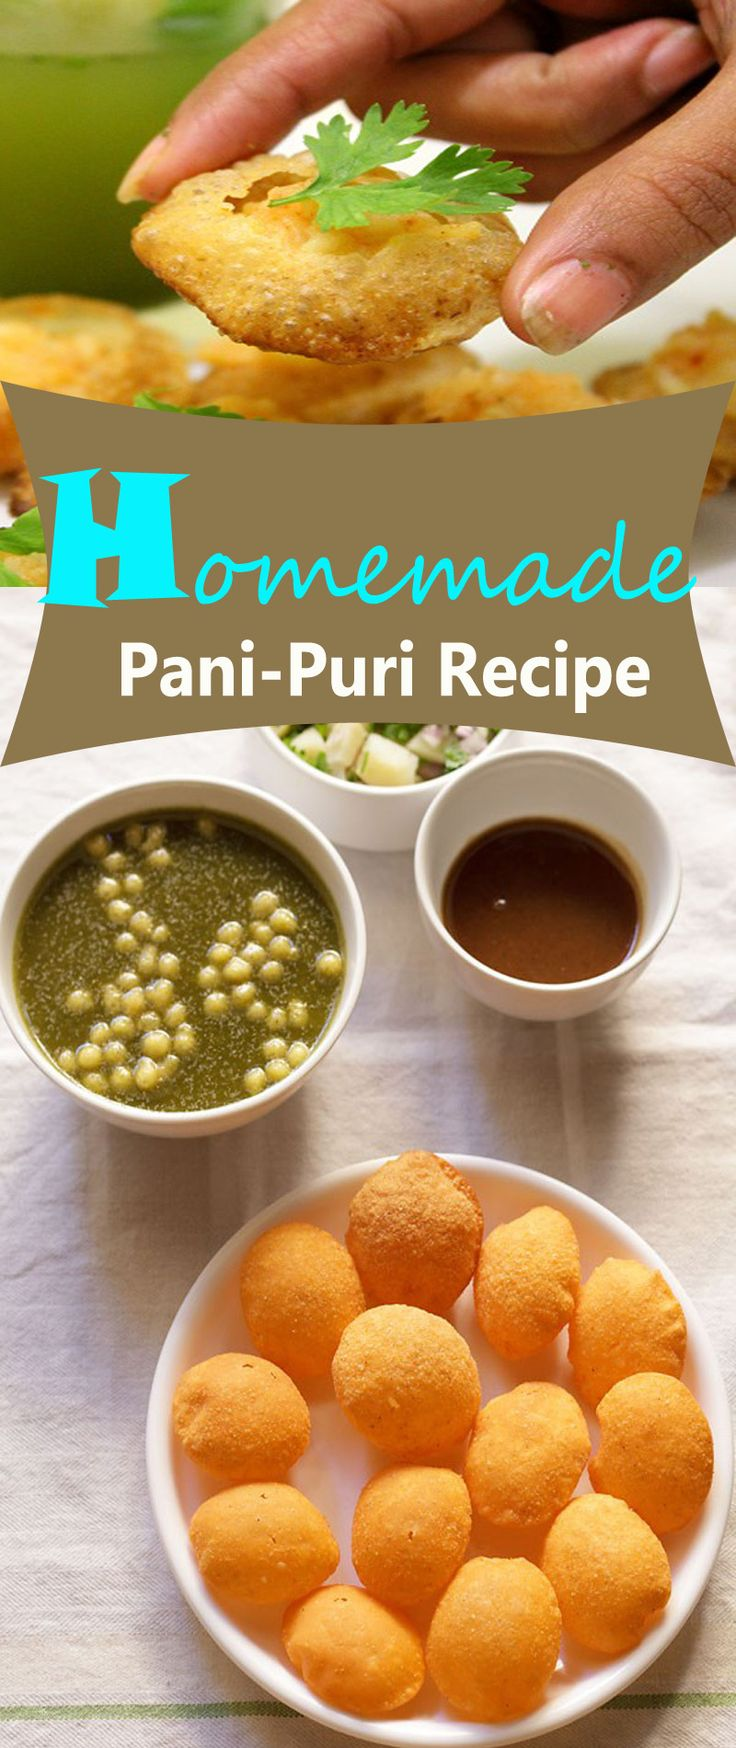 ❣ ❣ #panipuri #delicious #streetfood